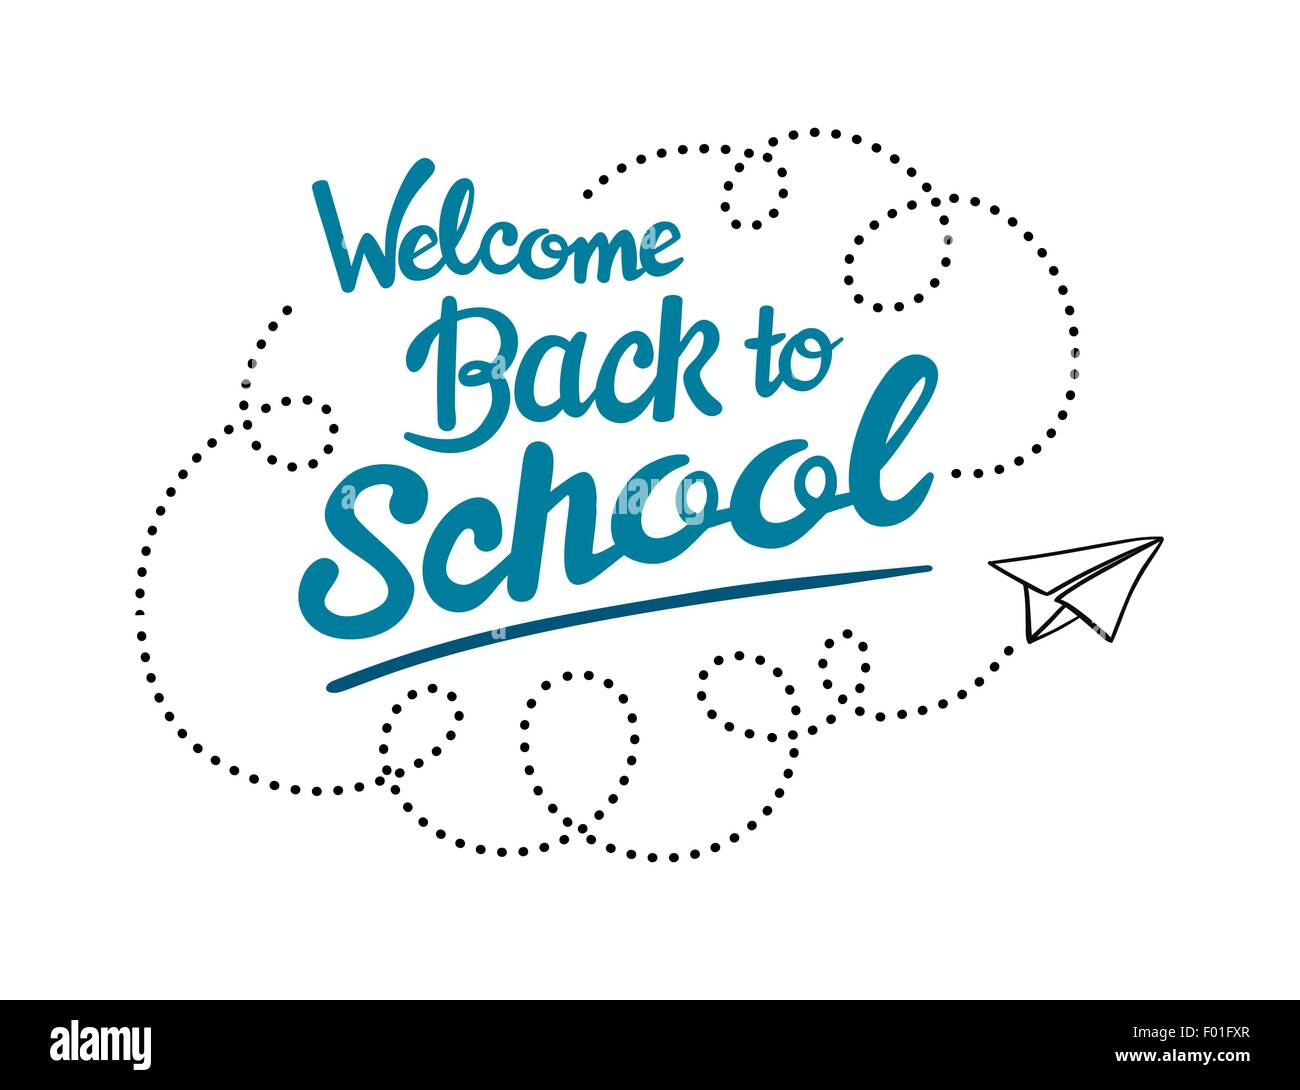 Welcome back to school message with paper plane icon vector